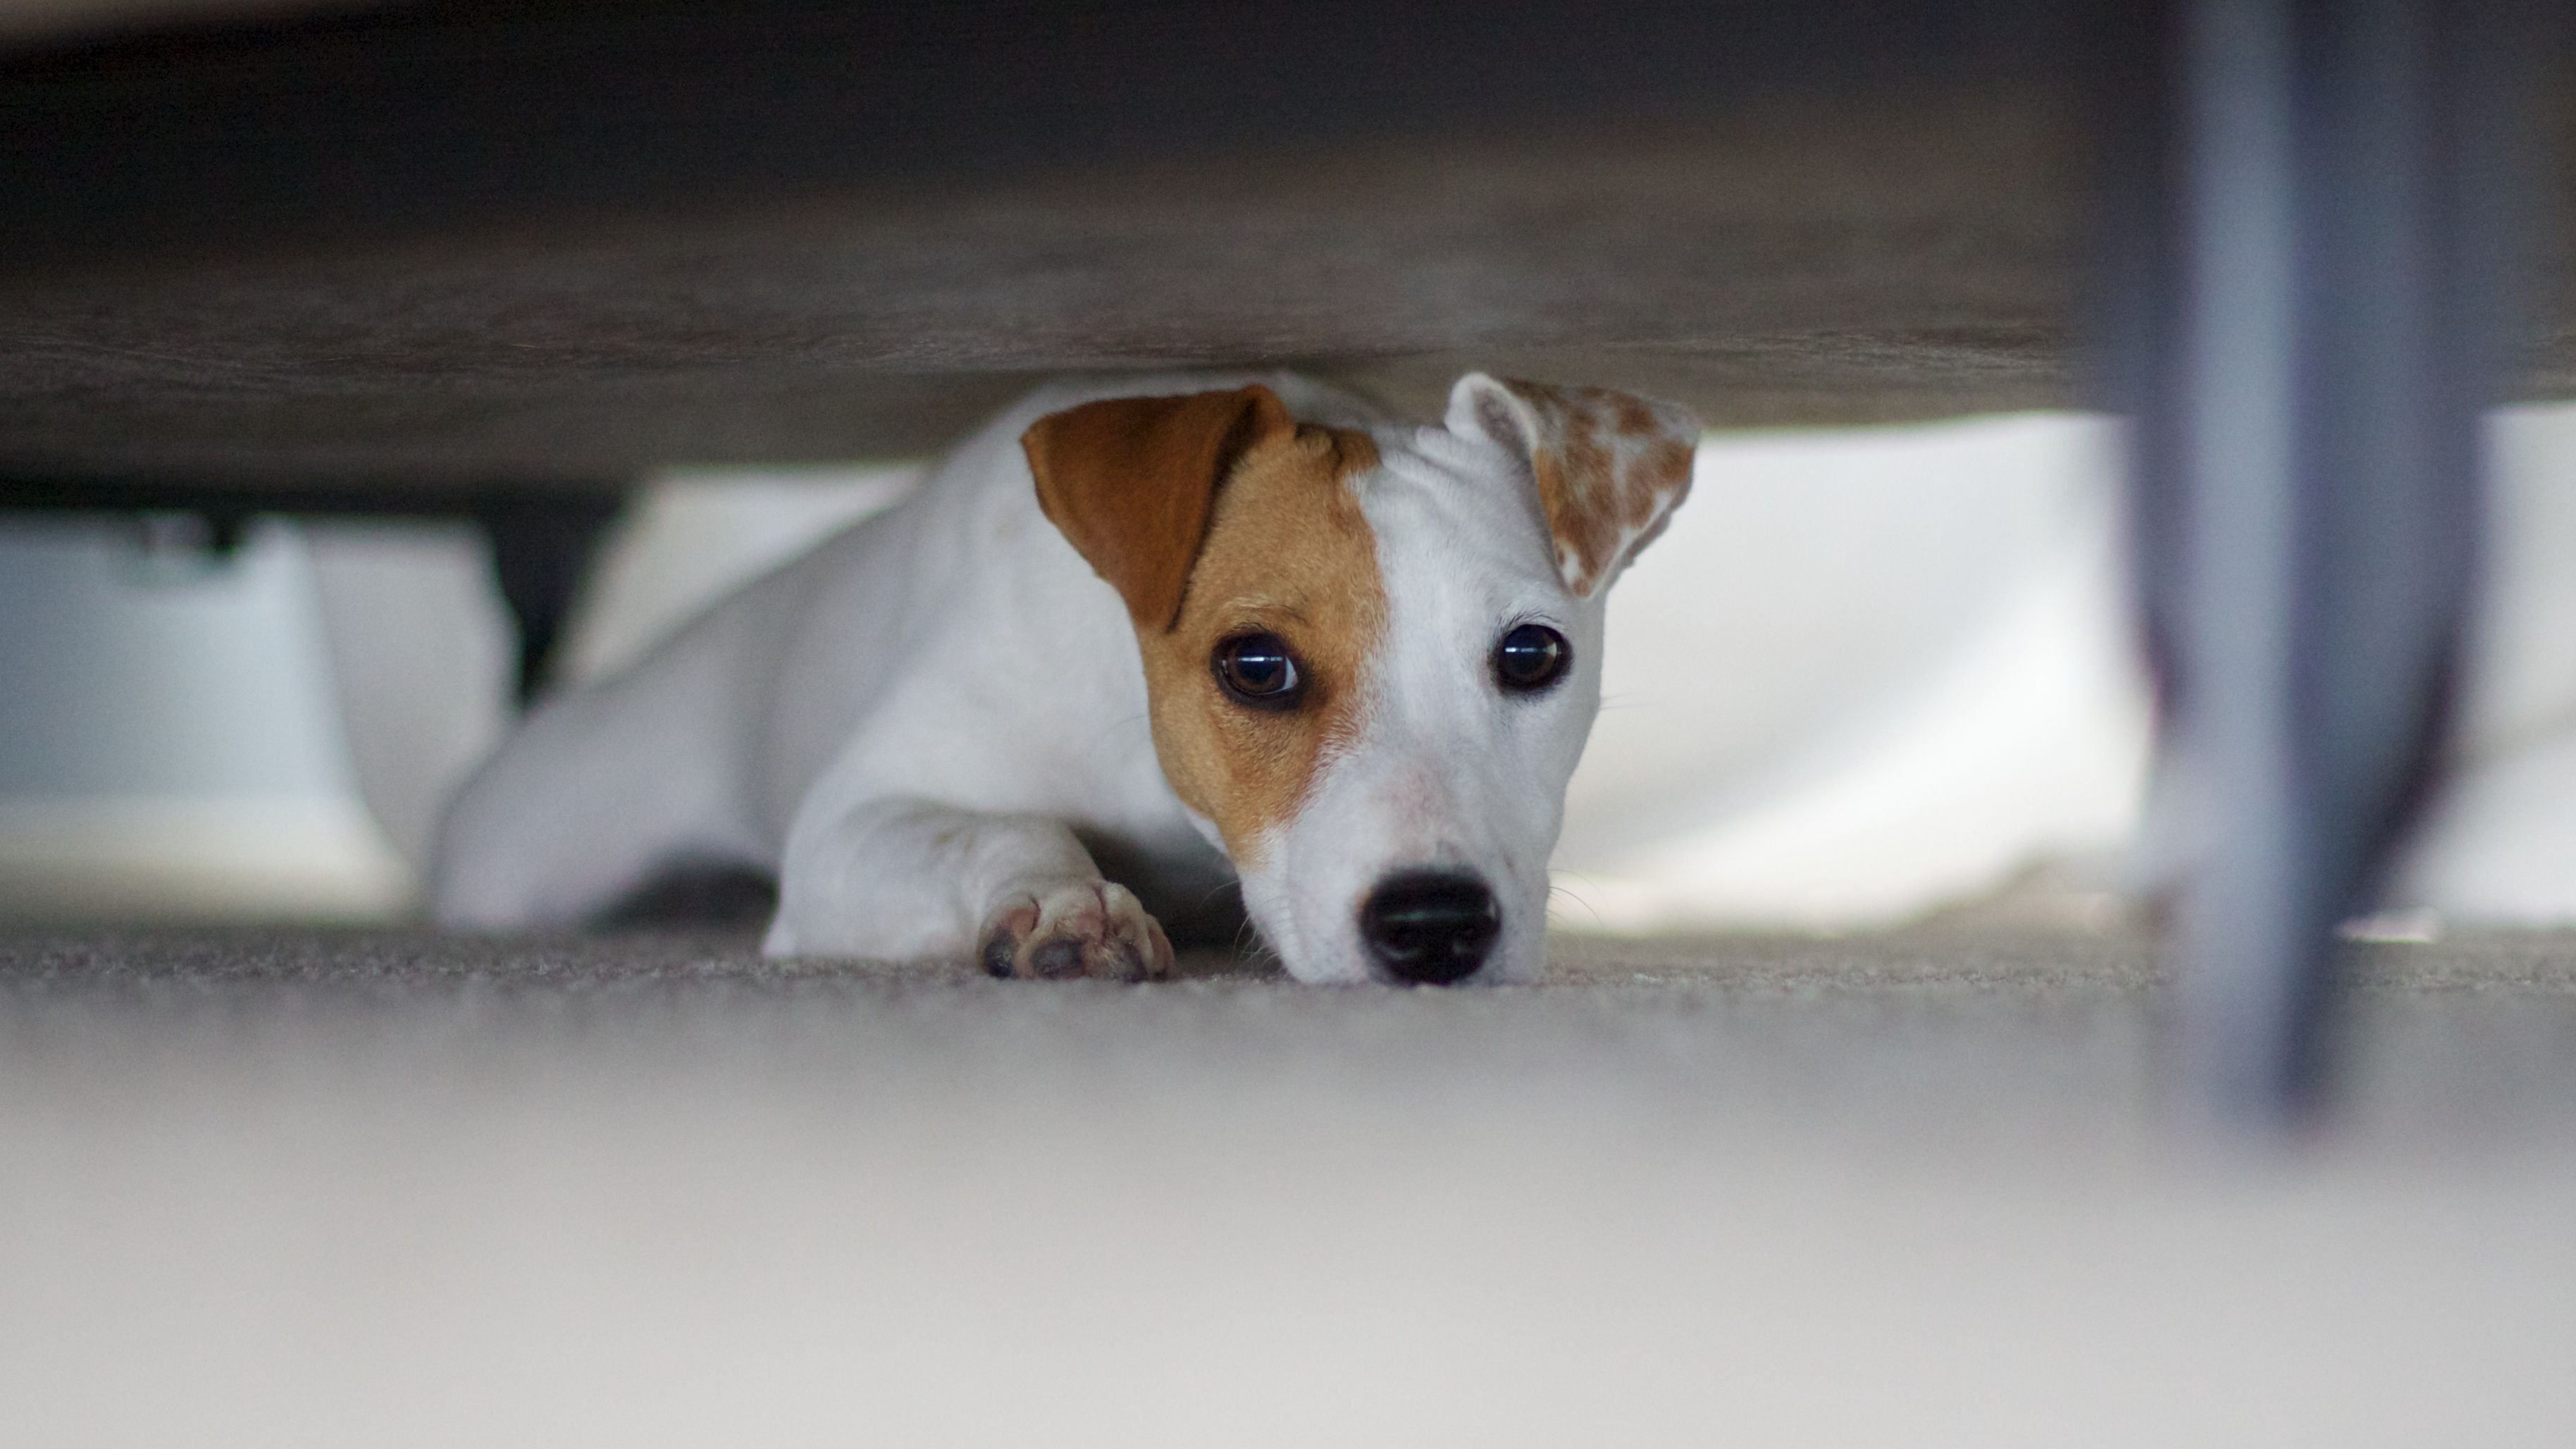 Common Fears and Phobias in Dogs